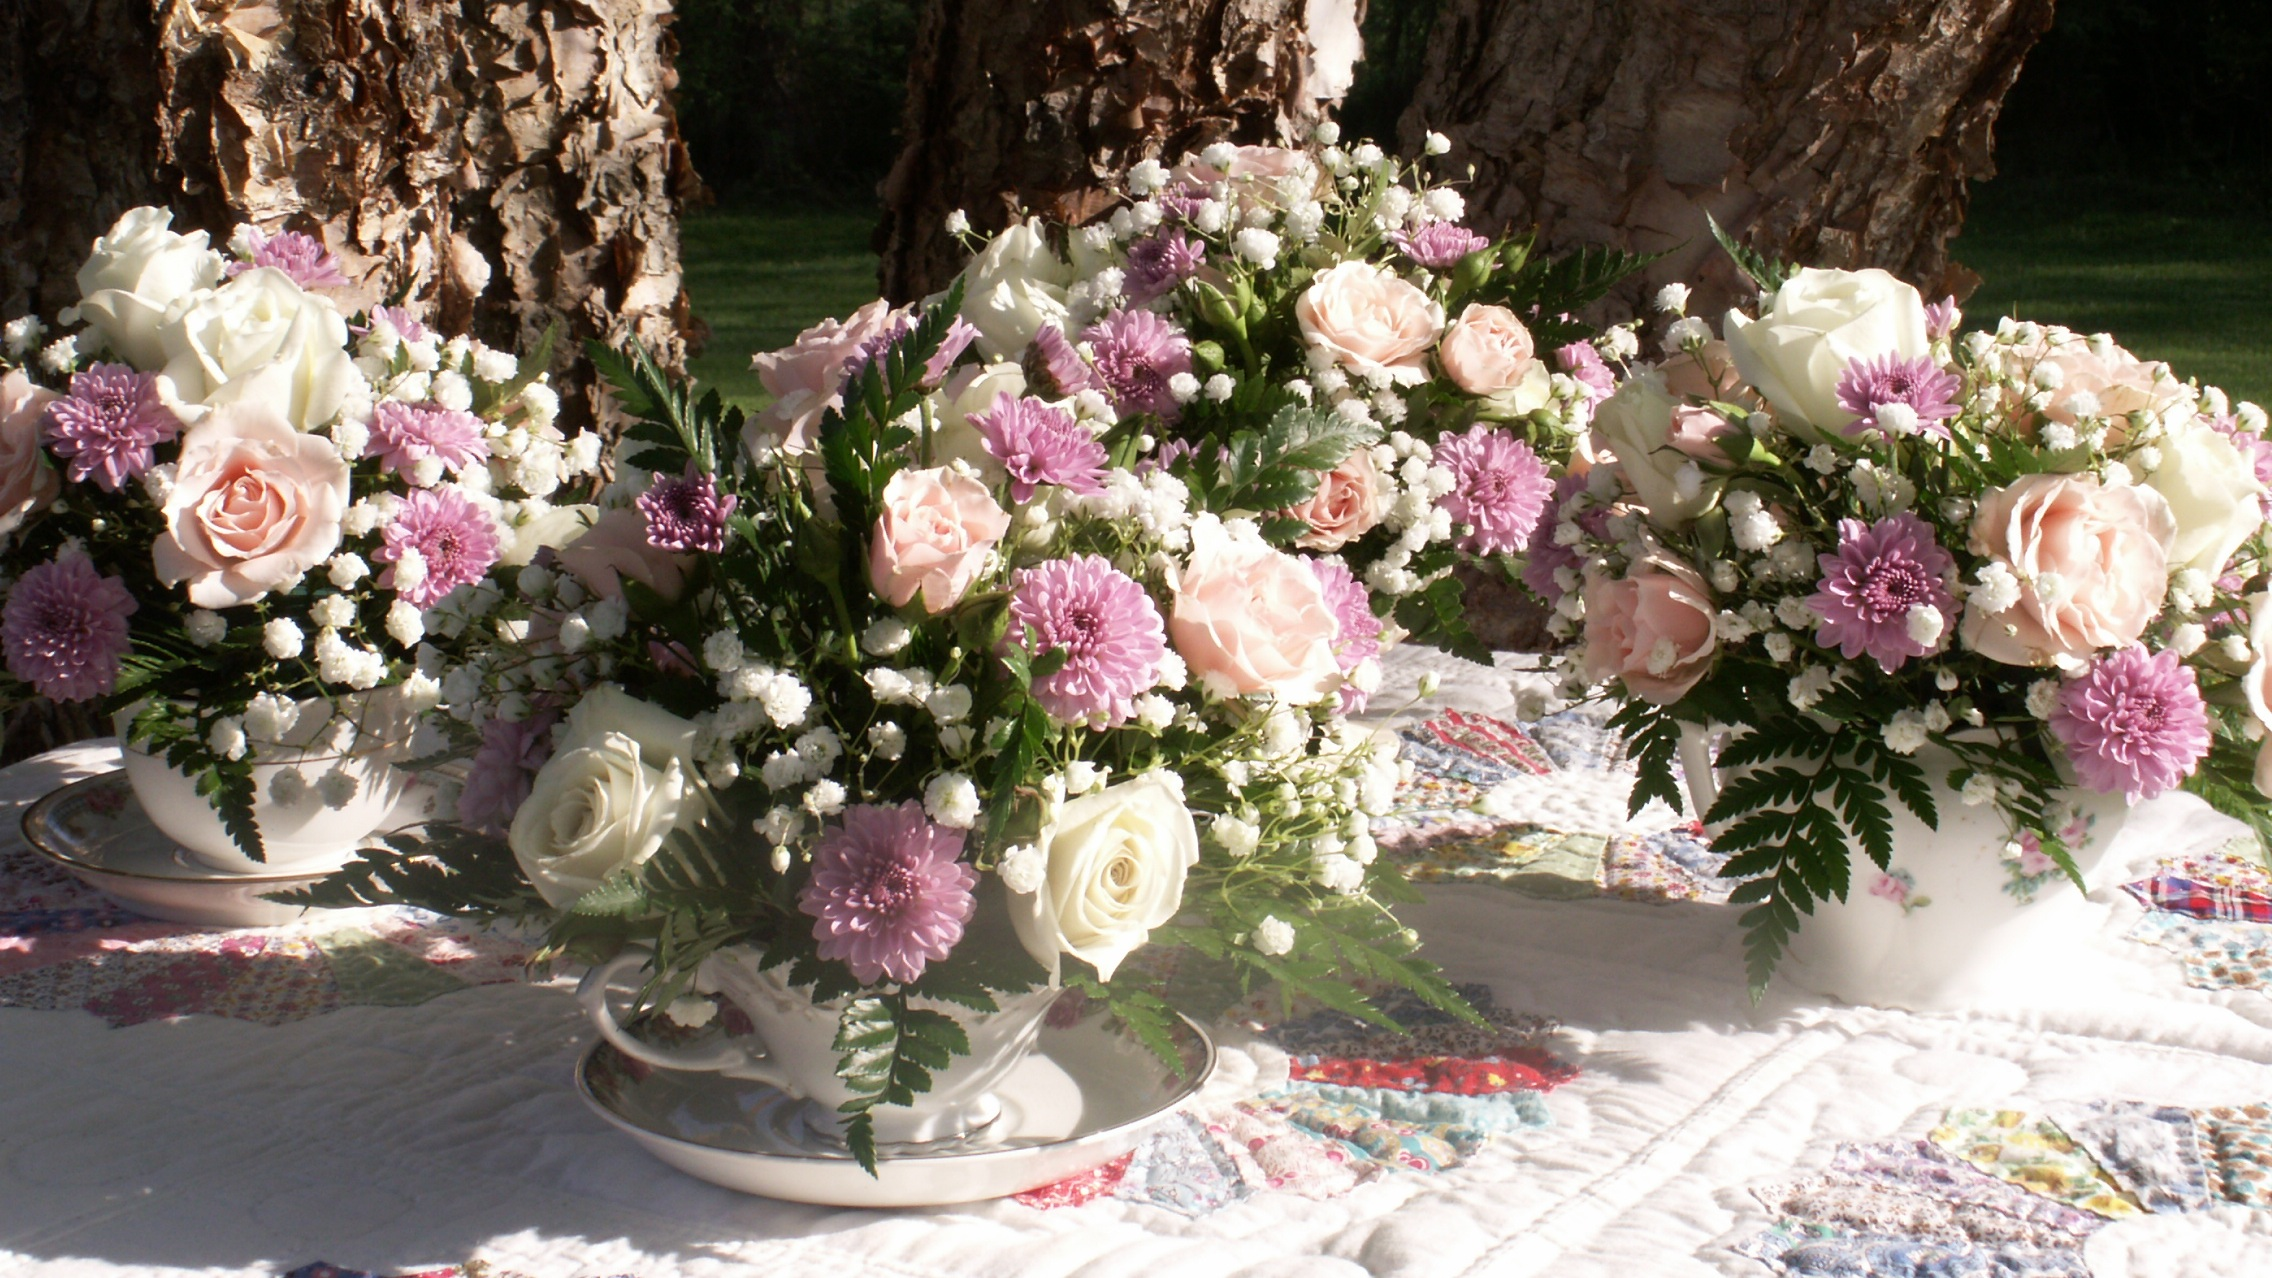 Teacup florals for small table luncheon